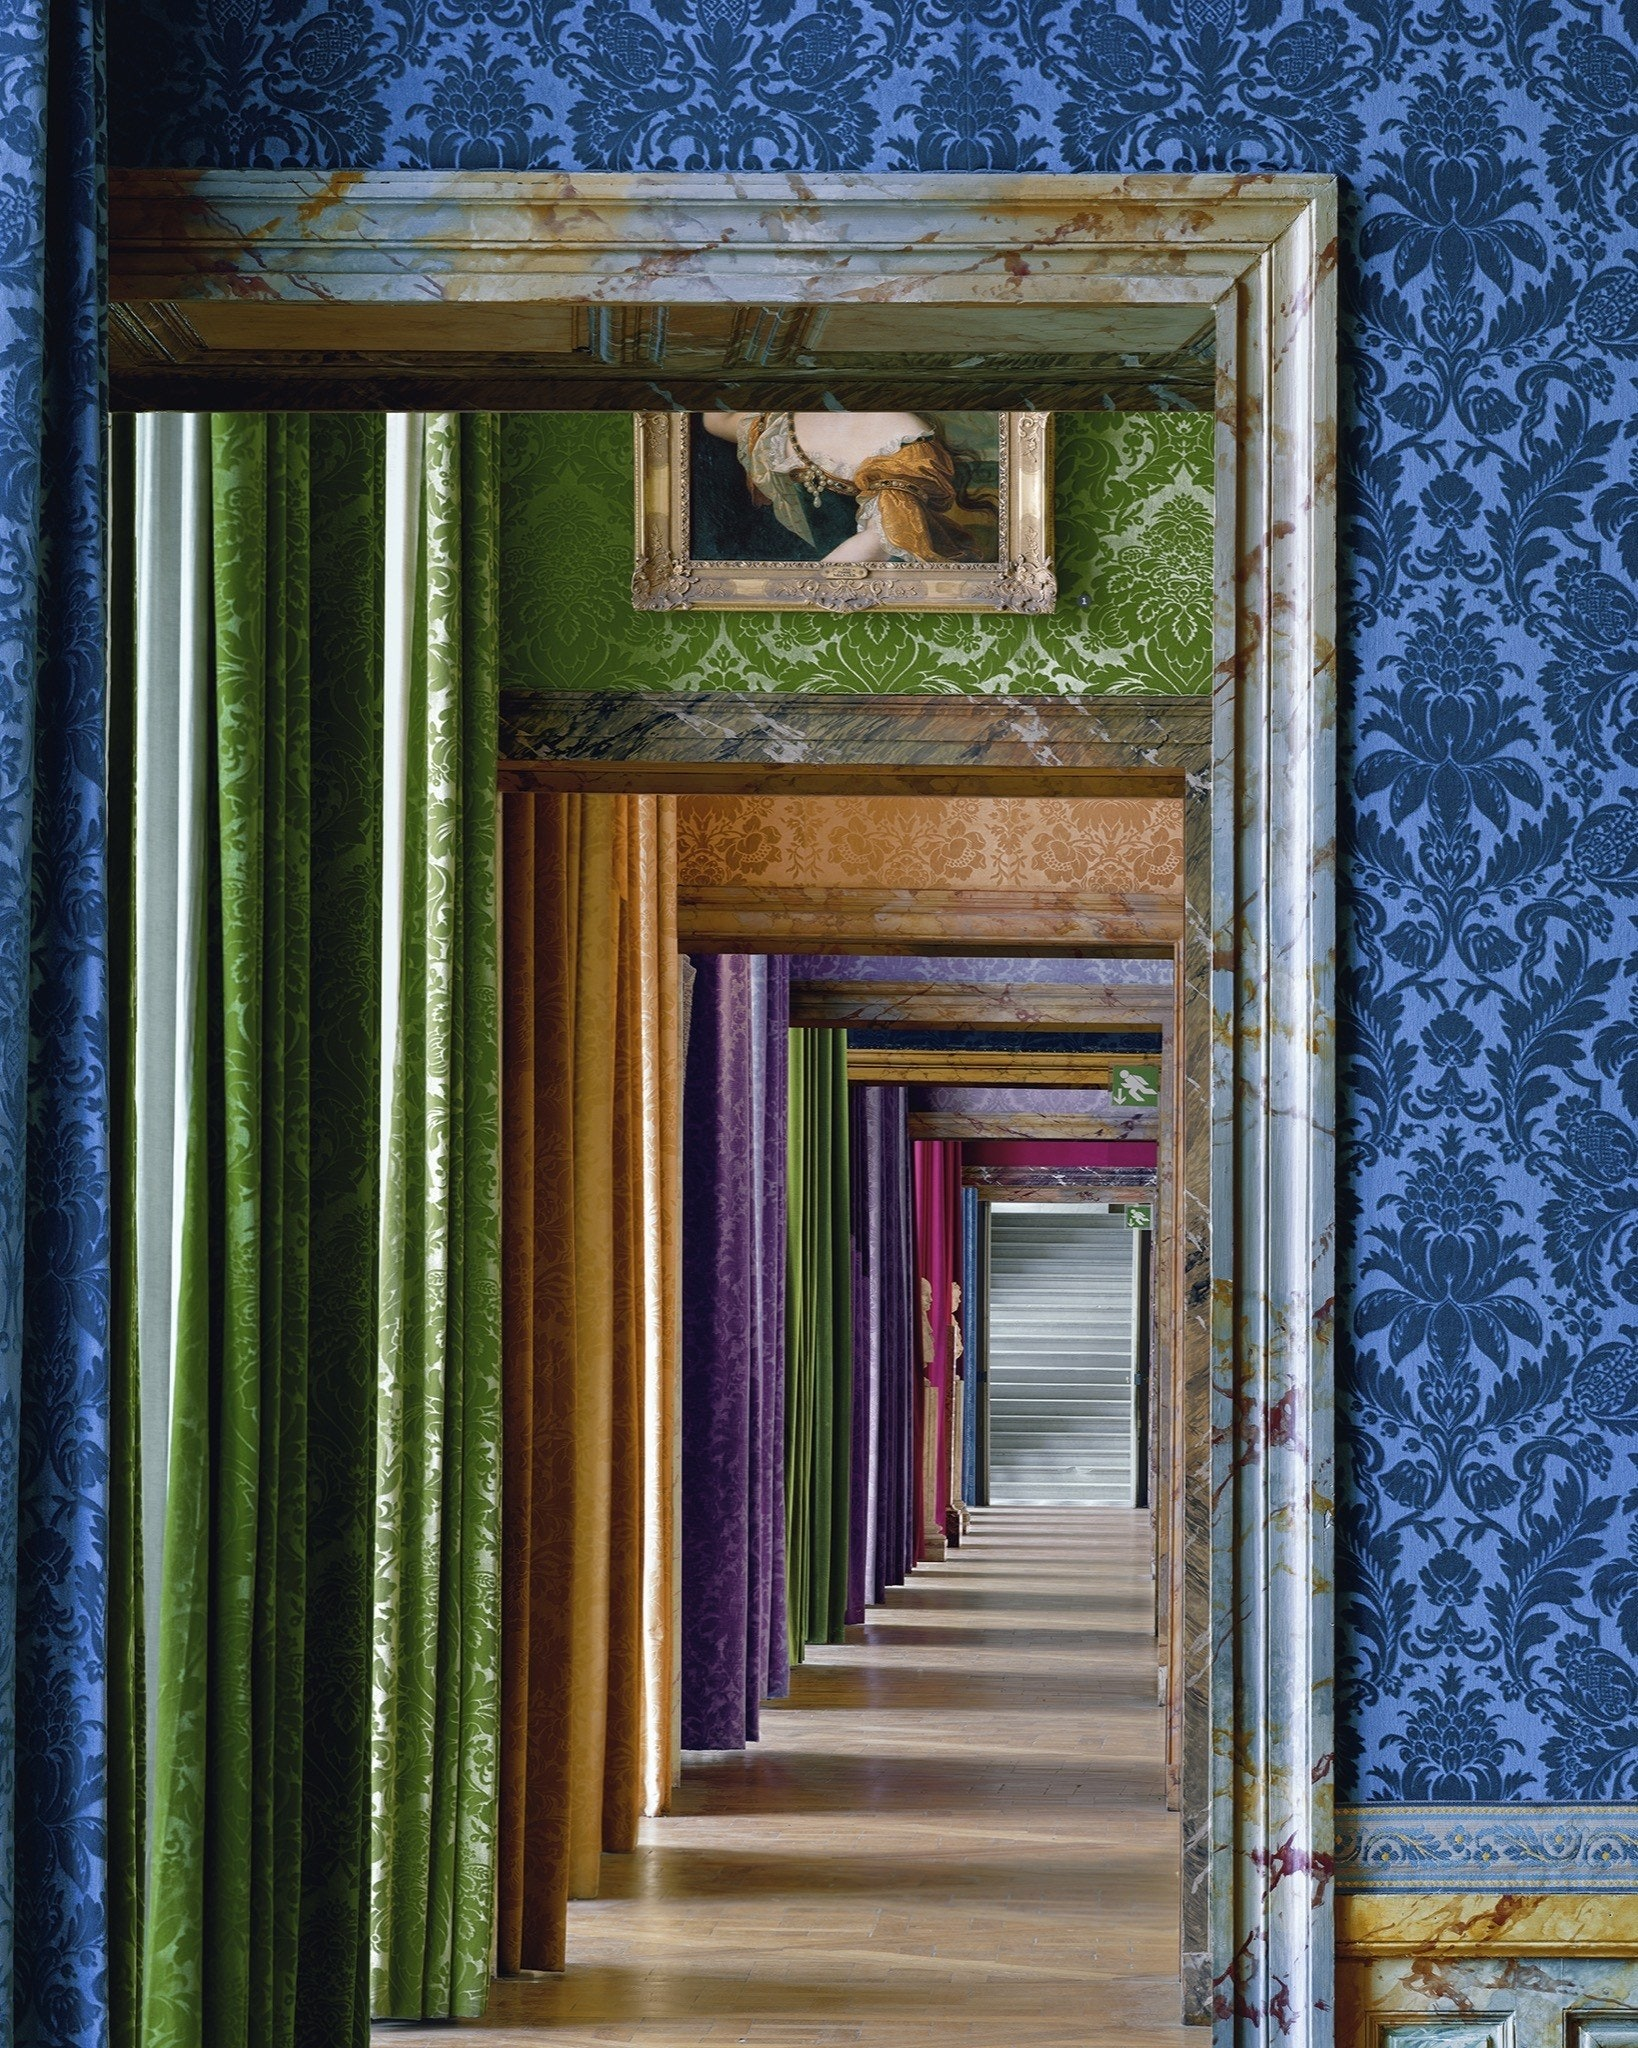 01-peter-copping-inspired-by-robert-polidori